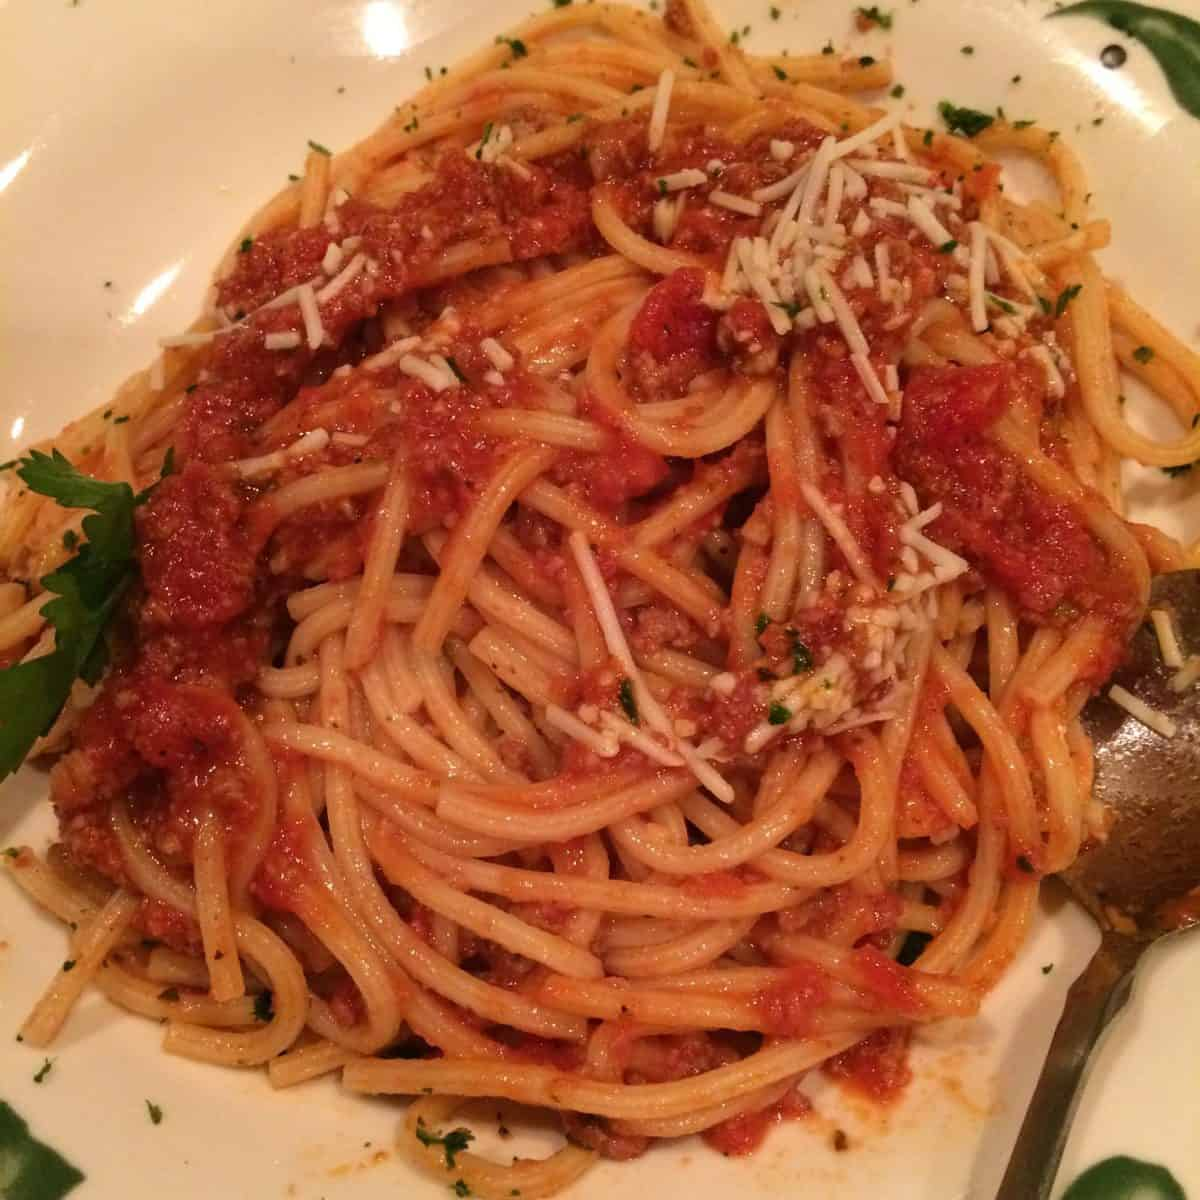 Bucatini with Spicy Three Meat Sauce at Olive Garden